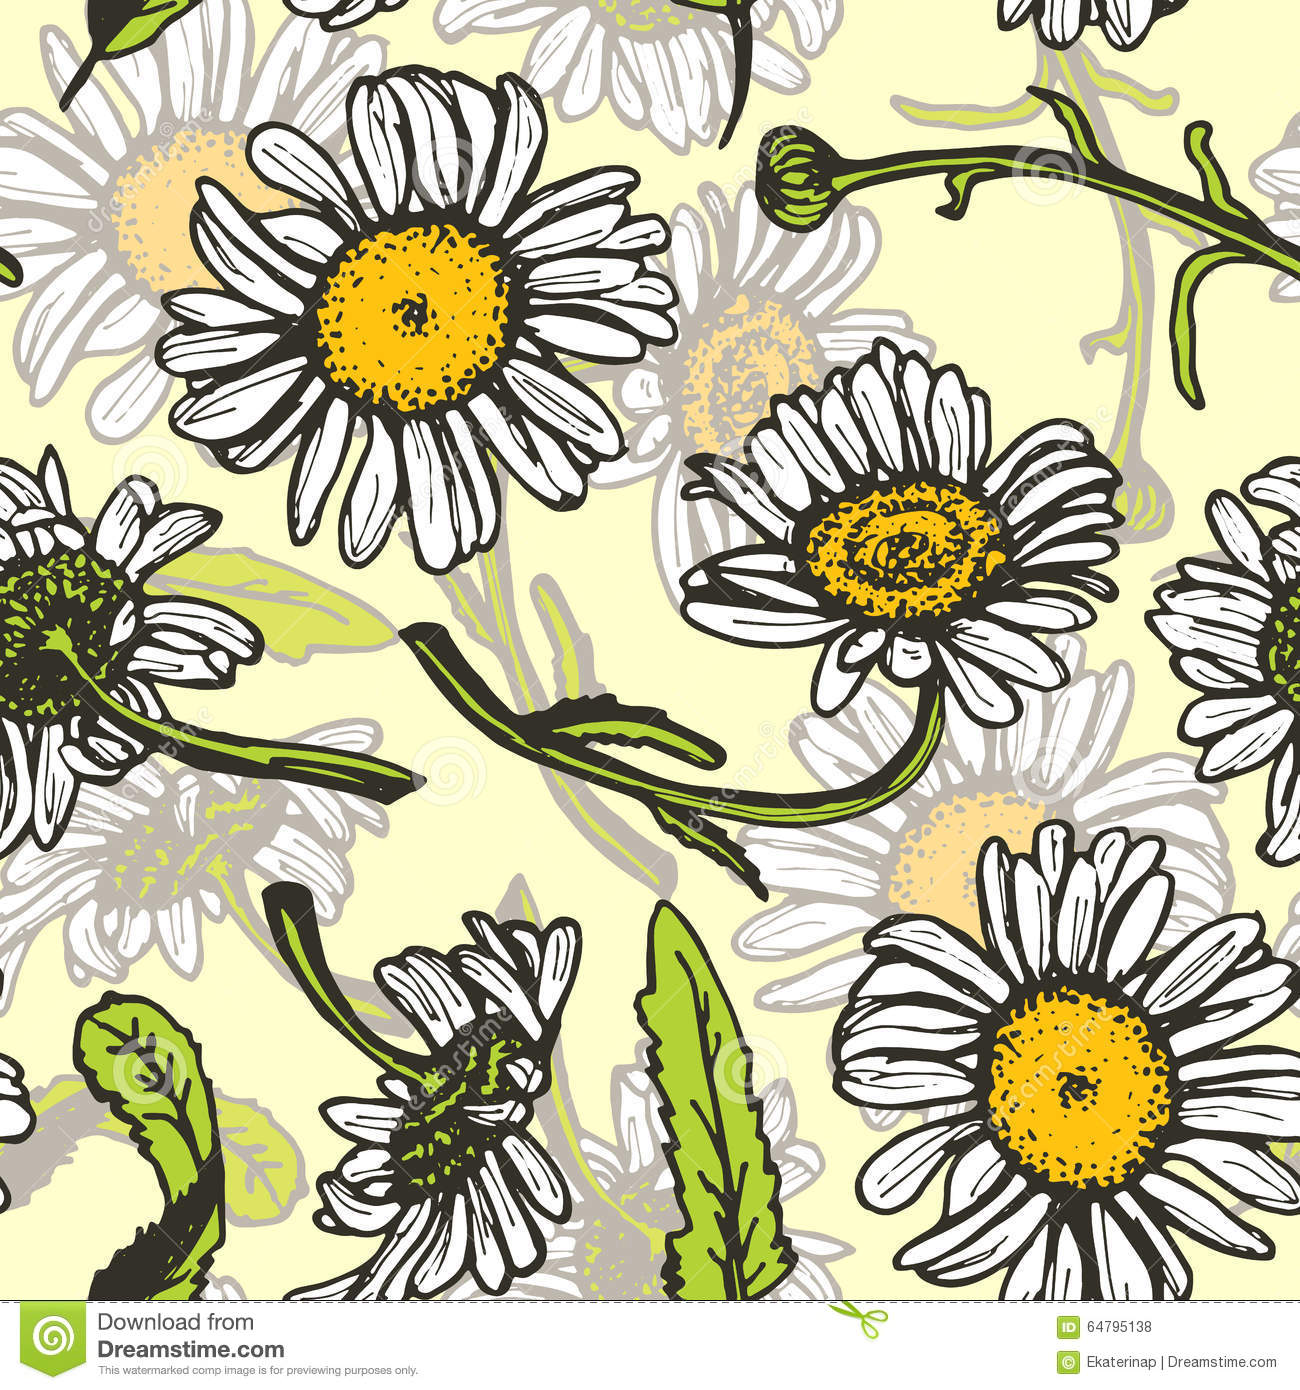 Vintage daisies background